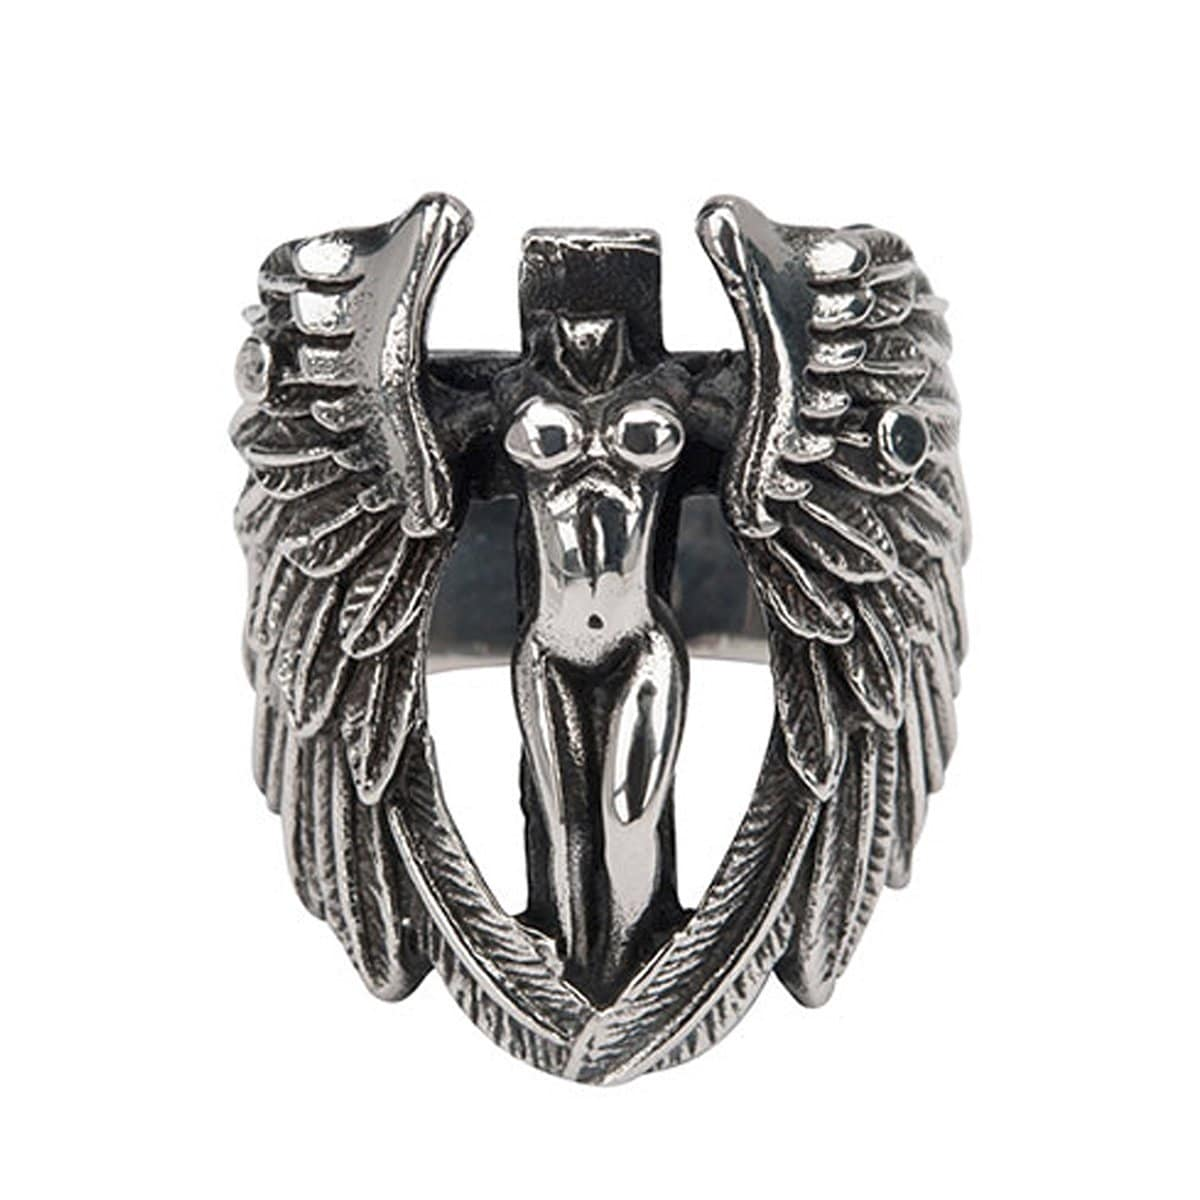 Darkened Silver Stainless Steel Angel with Cut Out Wings Ring